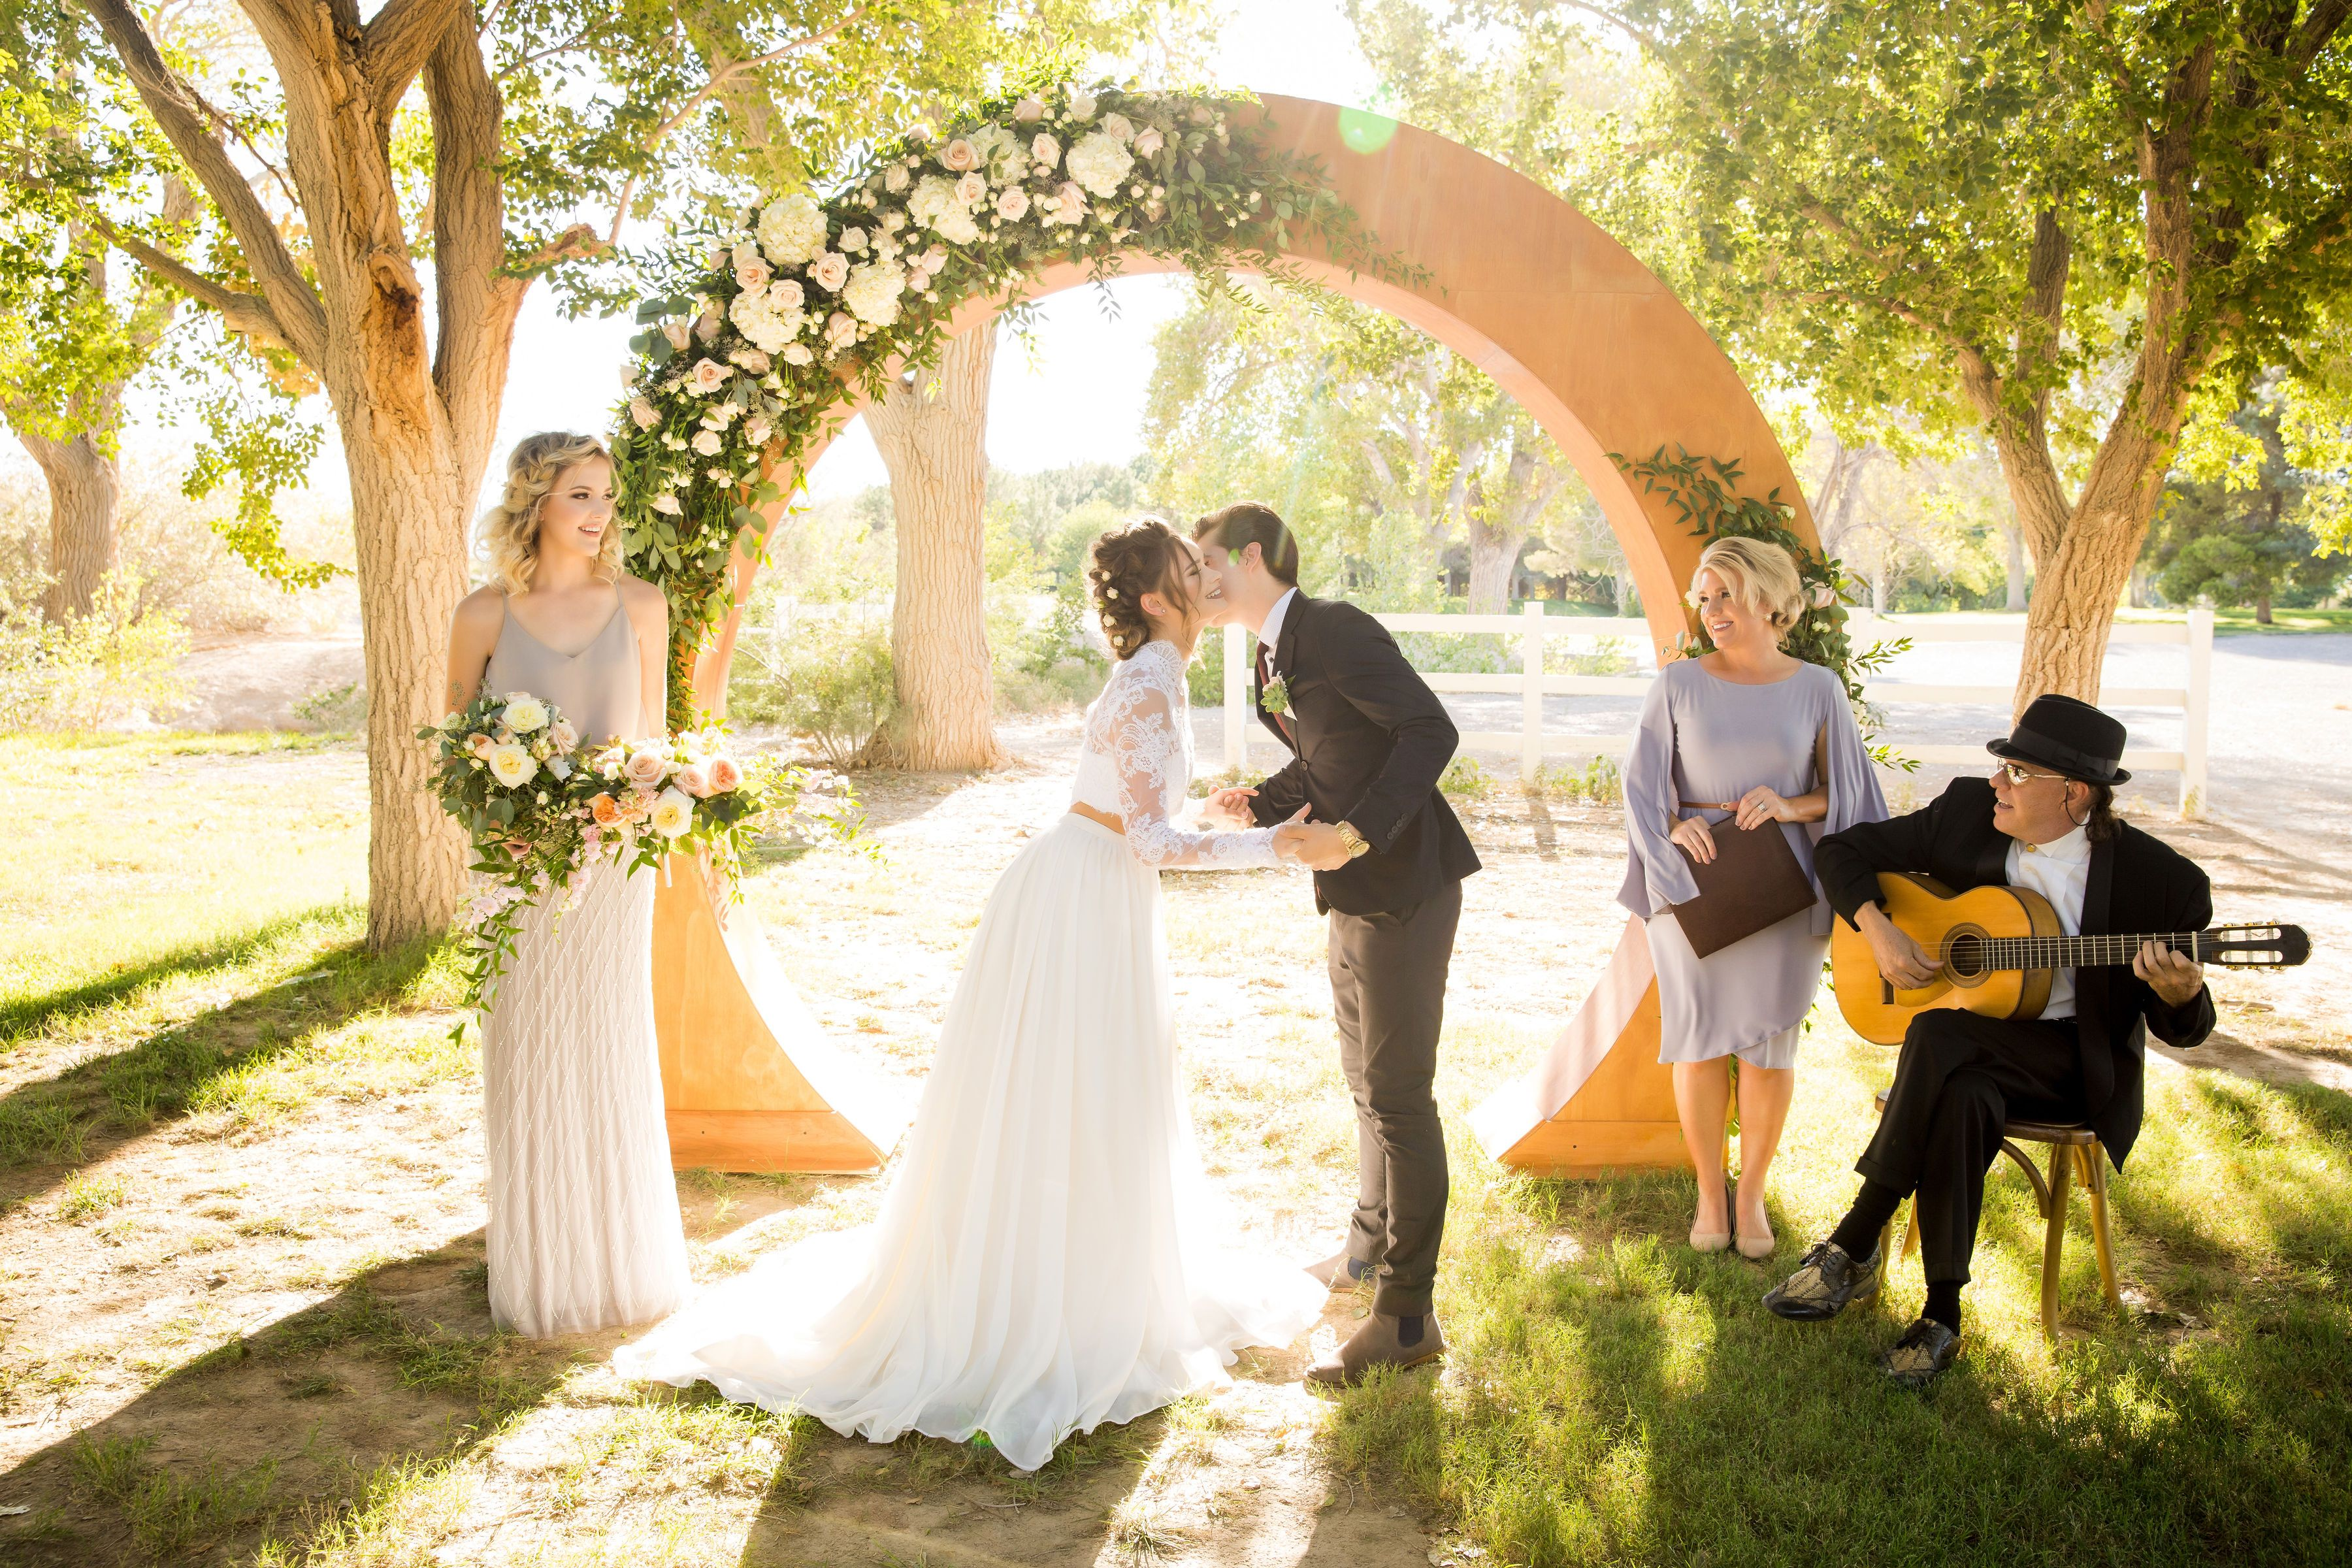 An Intimate Wedding At Floyd Lamb Park In Las Vegas Coordination Photo Video Cactuscollectiveweddings I Vegas Wedding Las Vegas Weddings Wedding Minister